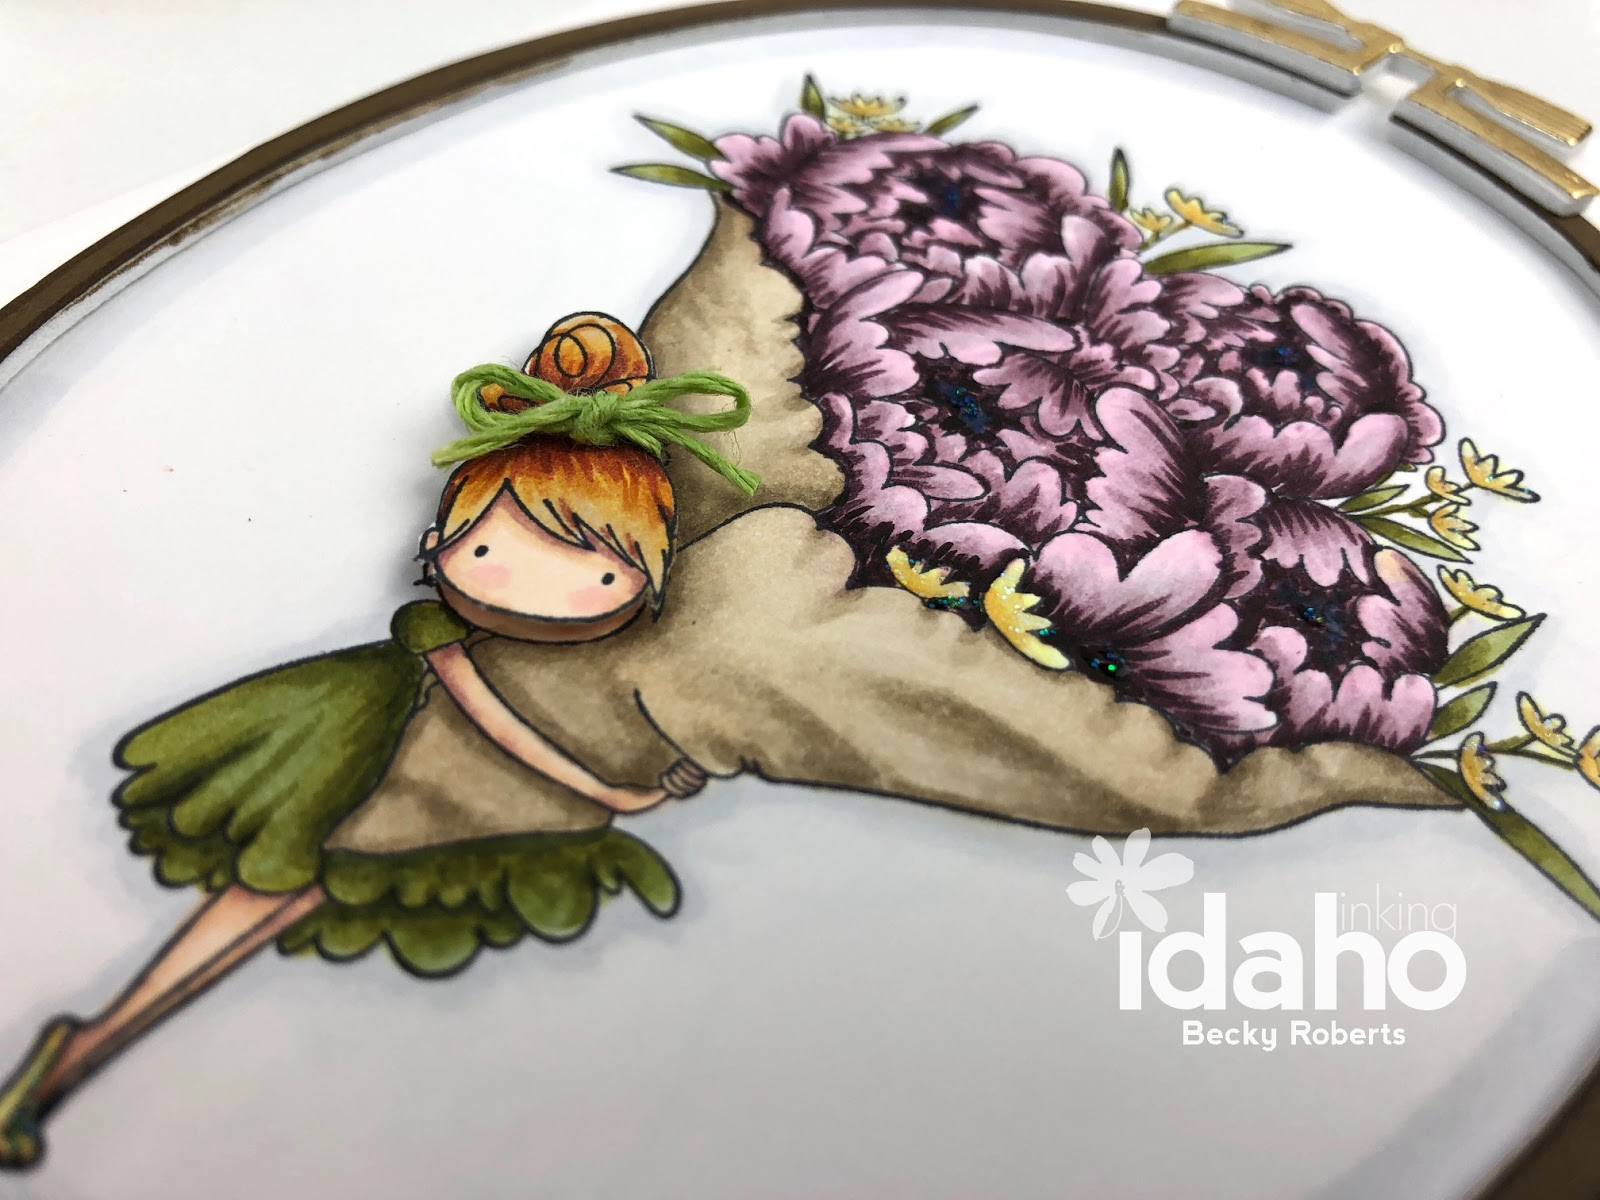 Inking Idaho: Sweet Sentiment July Copic Coloring Class